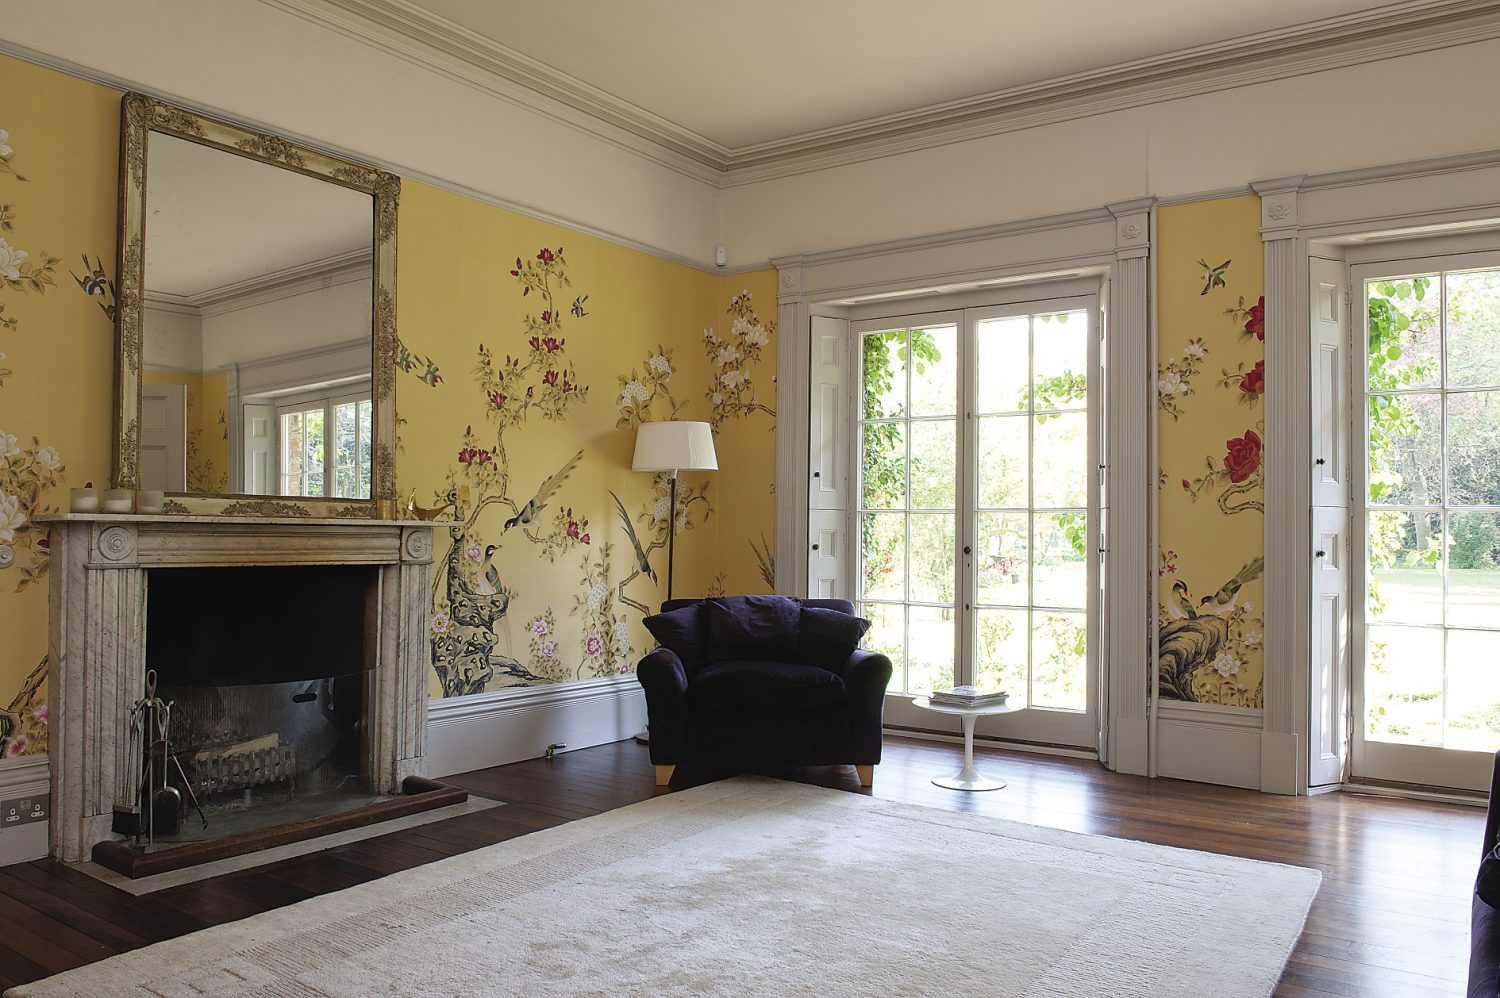 """In the drawing room the walls have been covered with golden yellow silk that has been hand-painted with exquisitely detailed Chinese birds, trees and flowers. """"I saw it in the de Gournay showroom when we lived in London and I used to think, 'one day, I hope to have a house worthy of it',"""" remembers Gabby"""